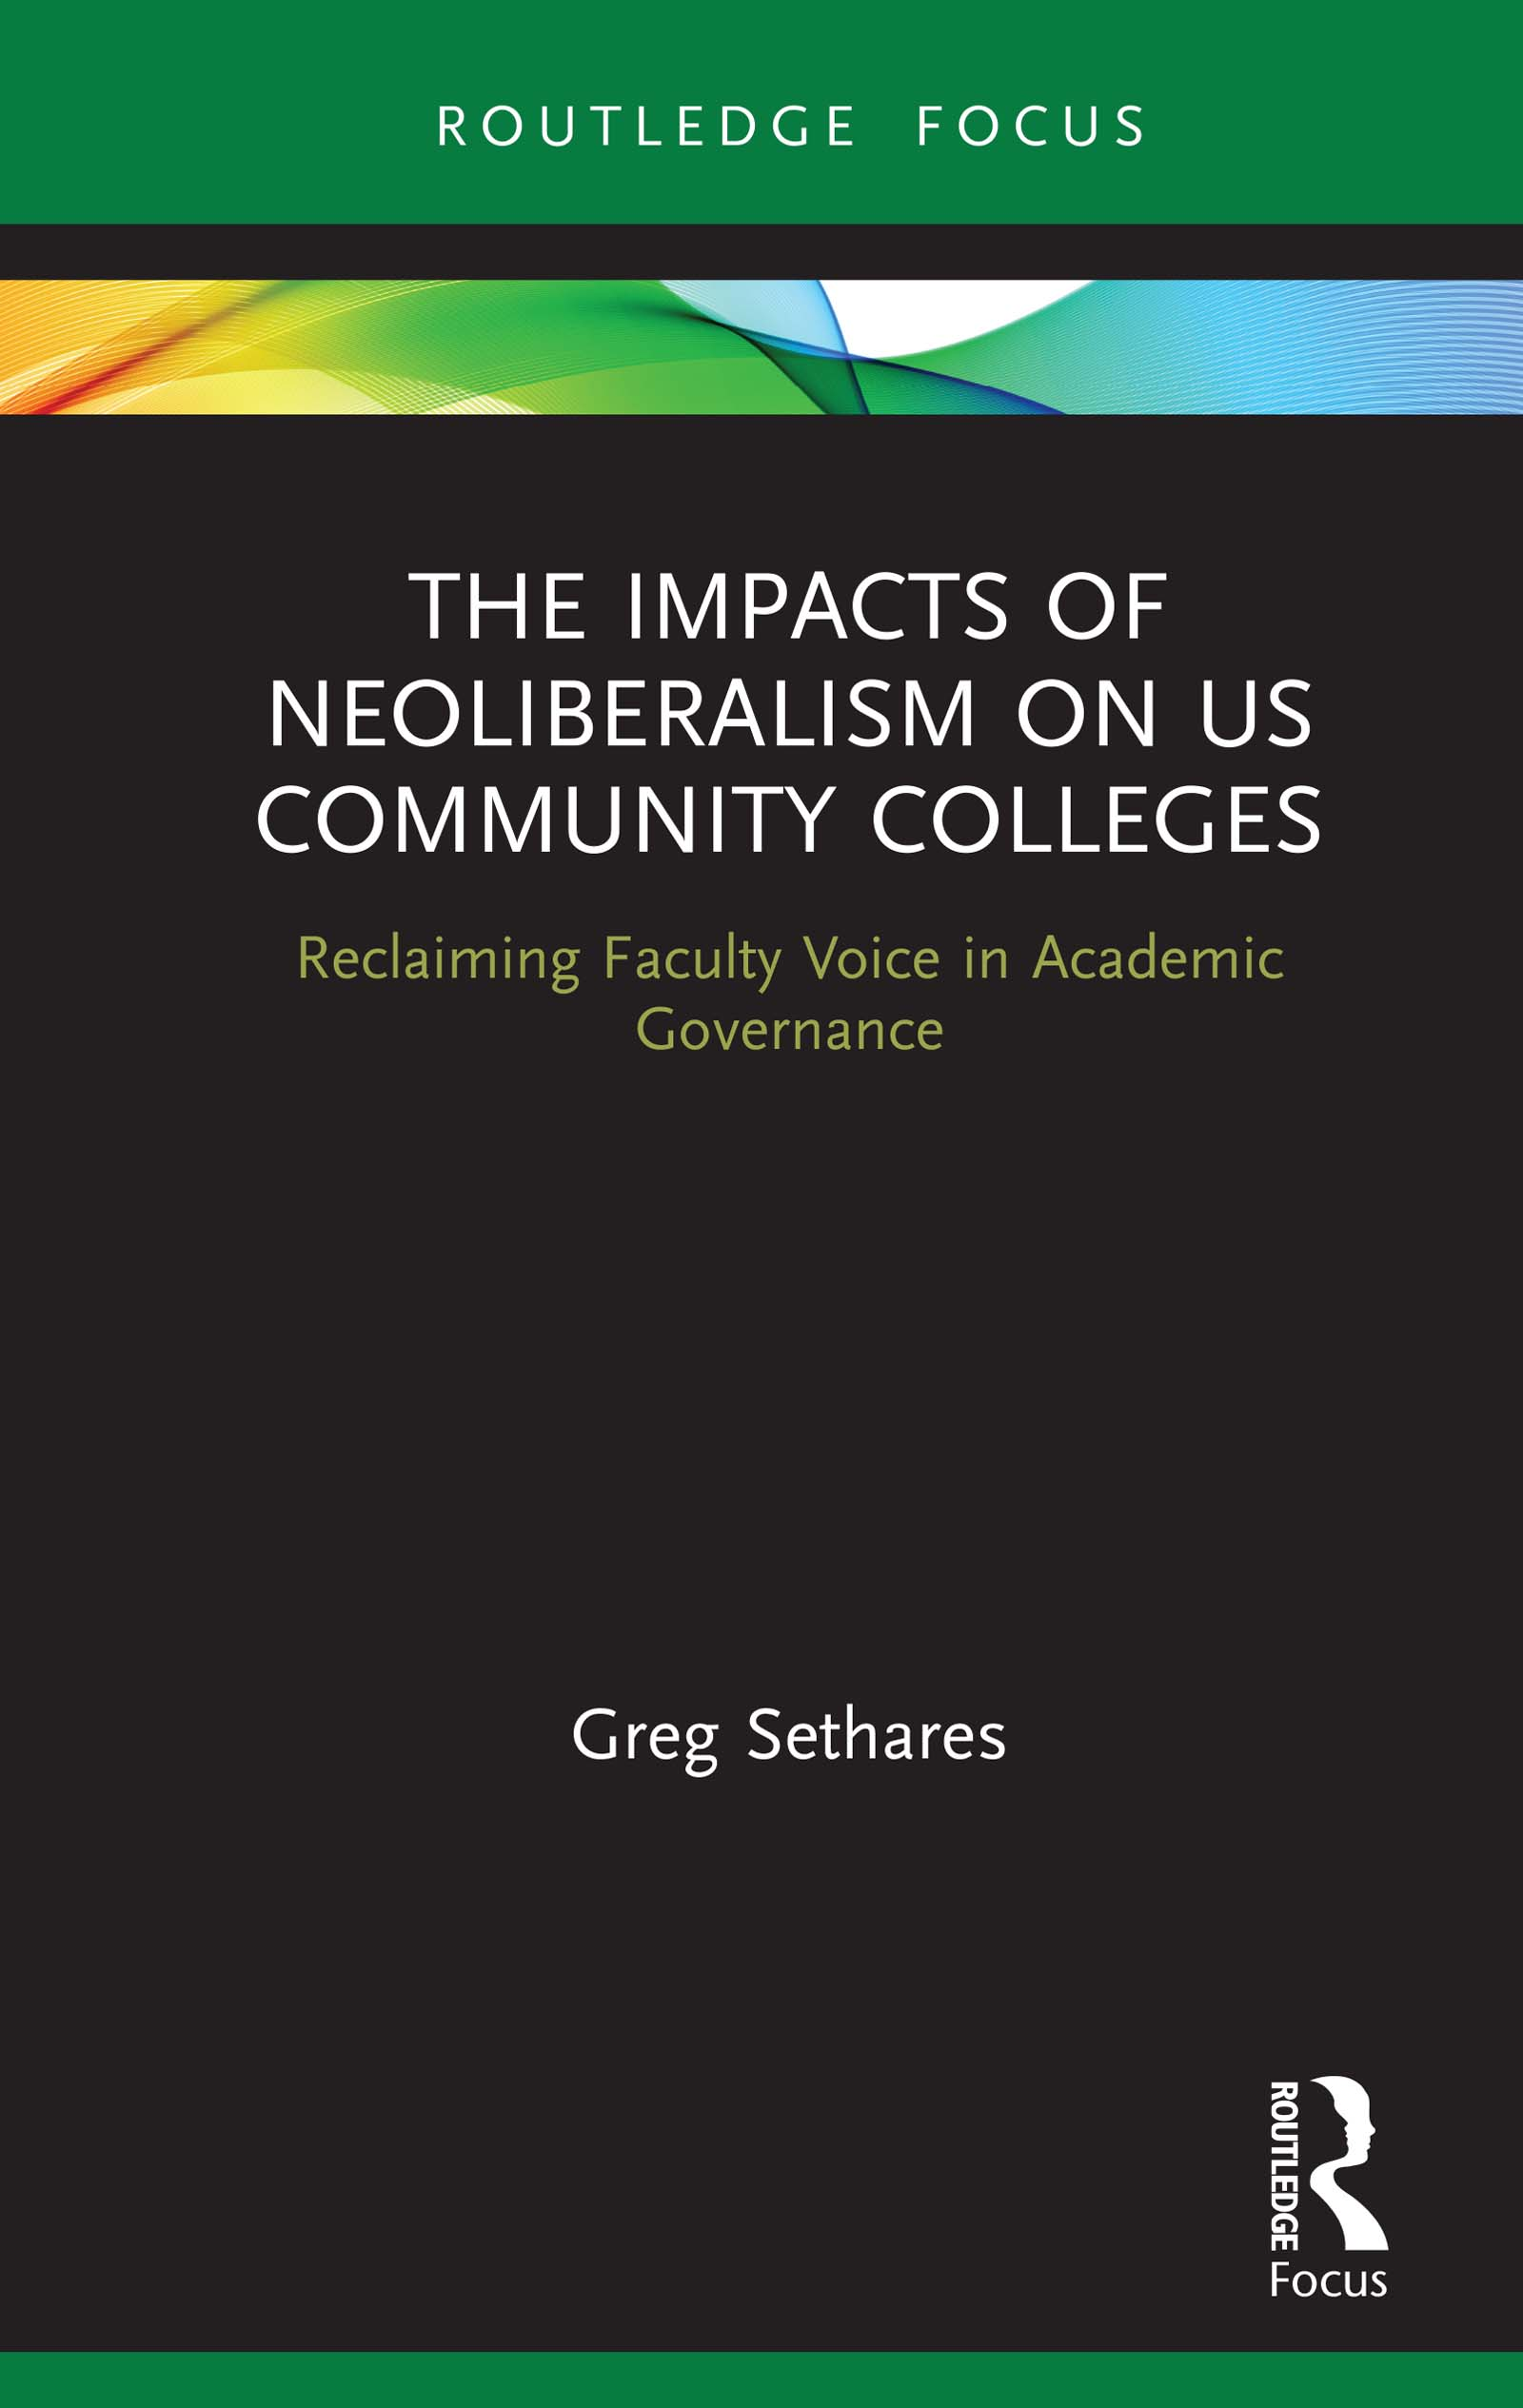 The New Political Economy of Community Colleges